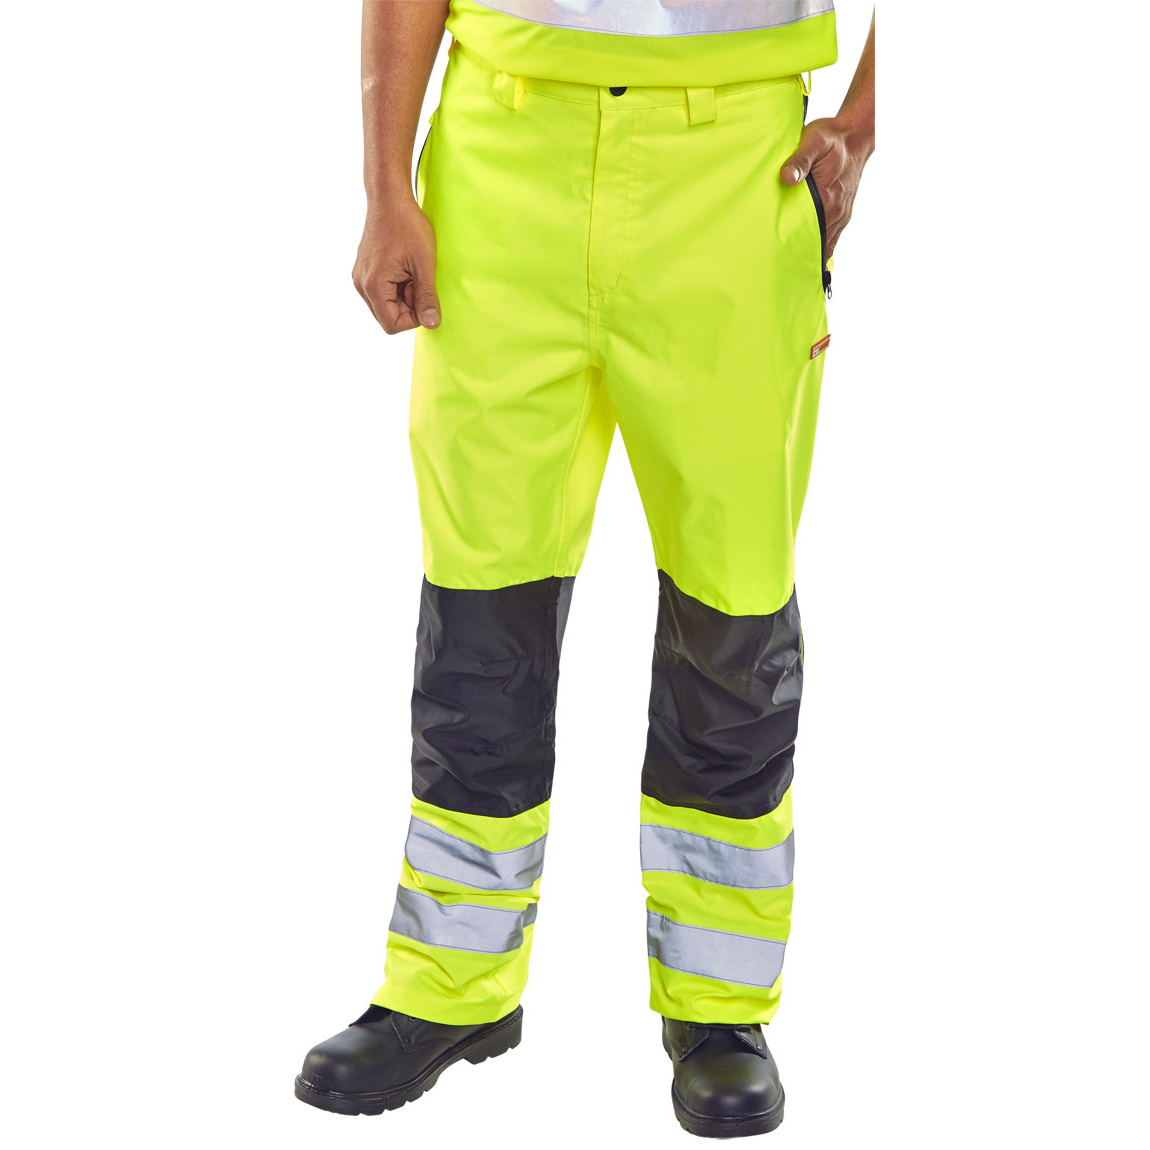 Ladies B-Seen Contrast Trousers Hi-Vis Waterproof 2XL Saturn Yellow Ref BD85SYXXL *Up to 3 Day Leadtime*